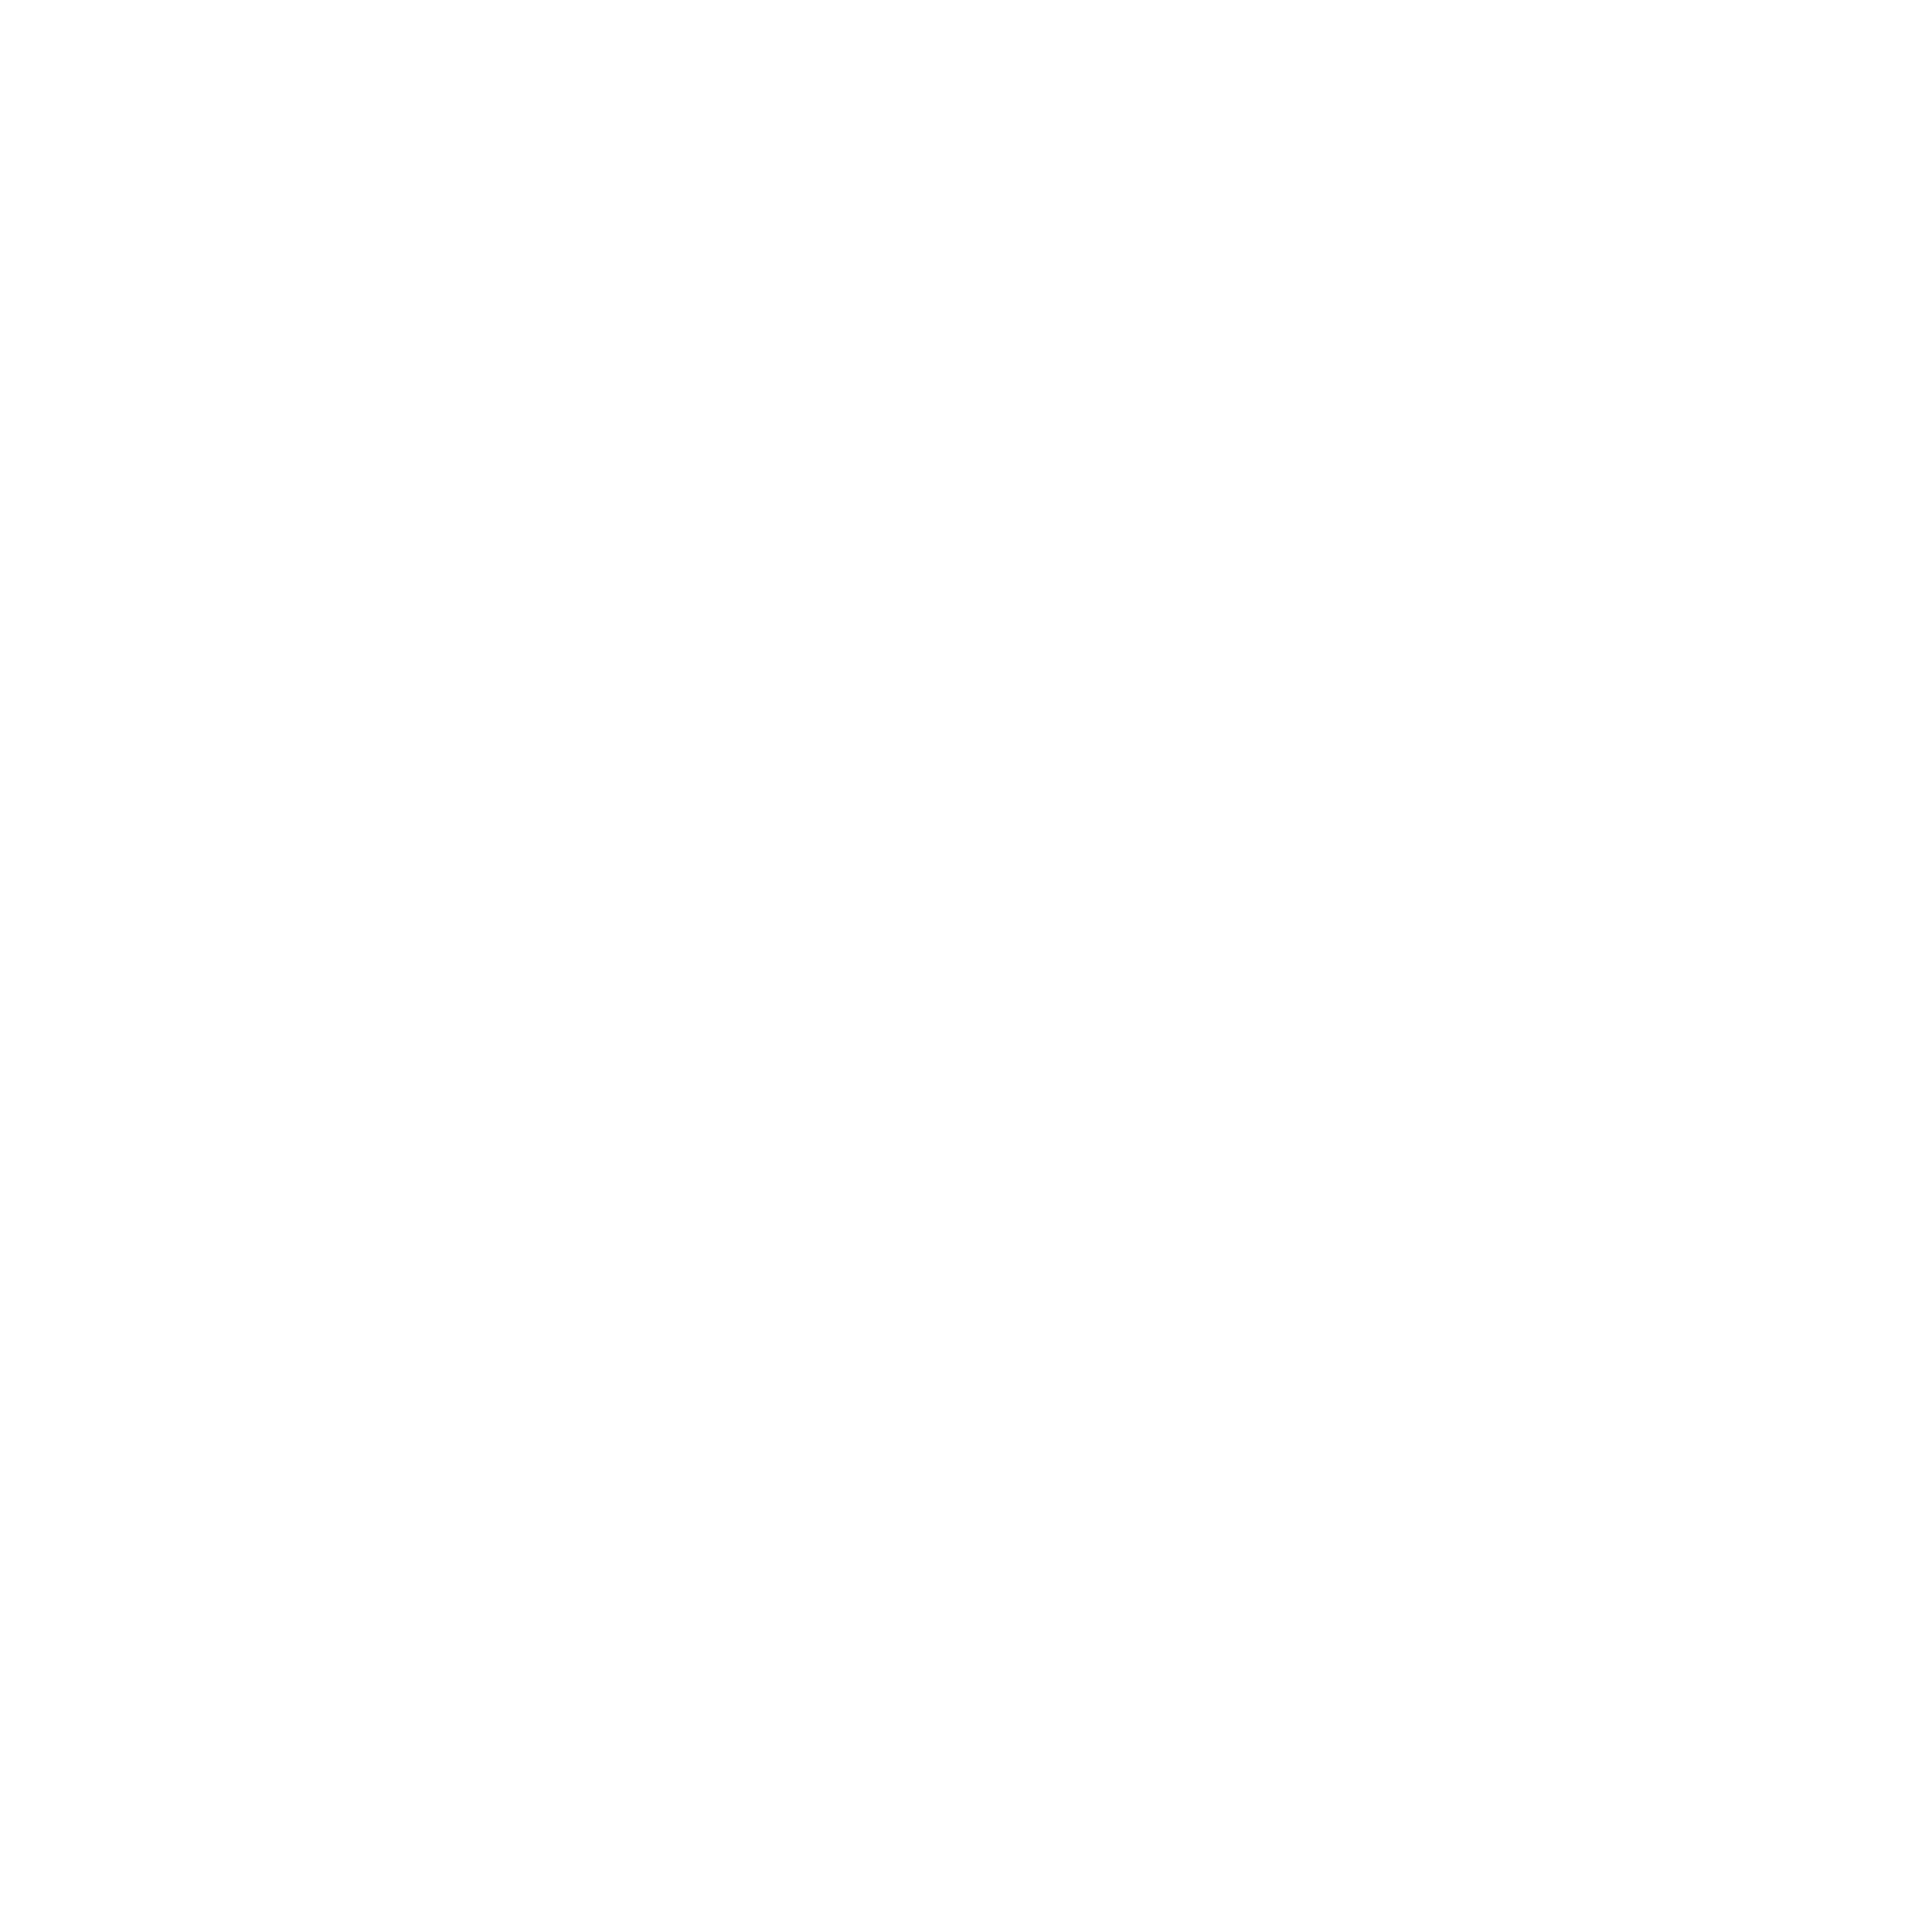 Di lano Fashion